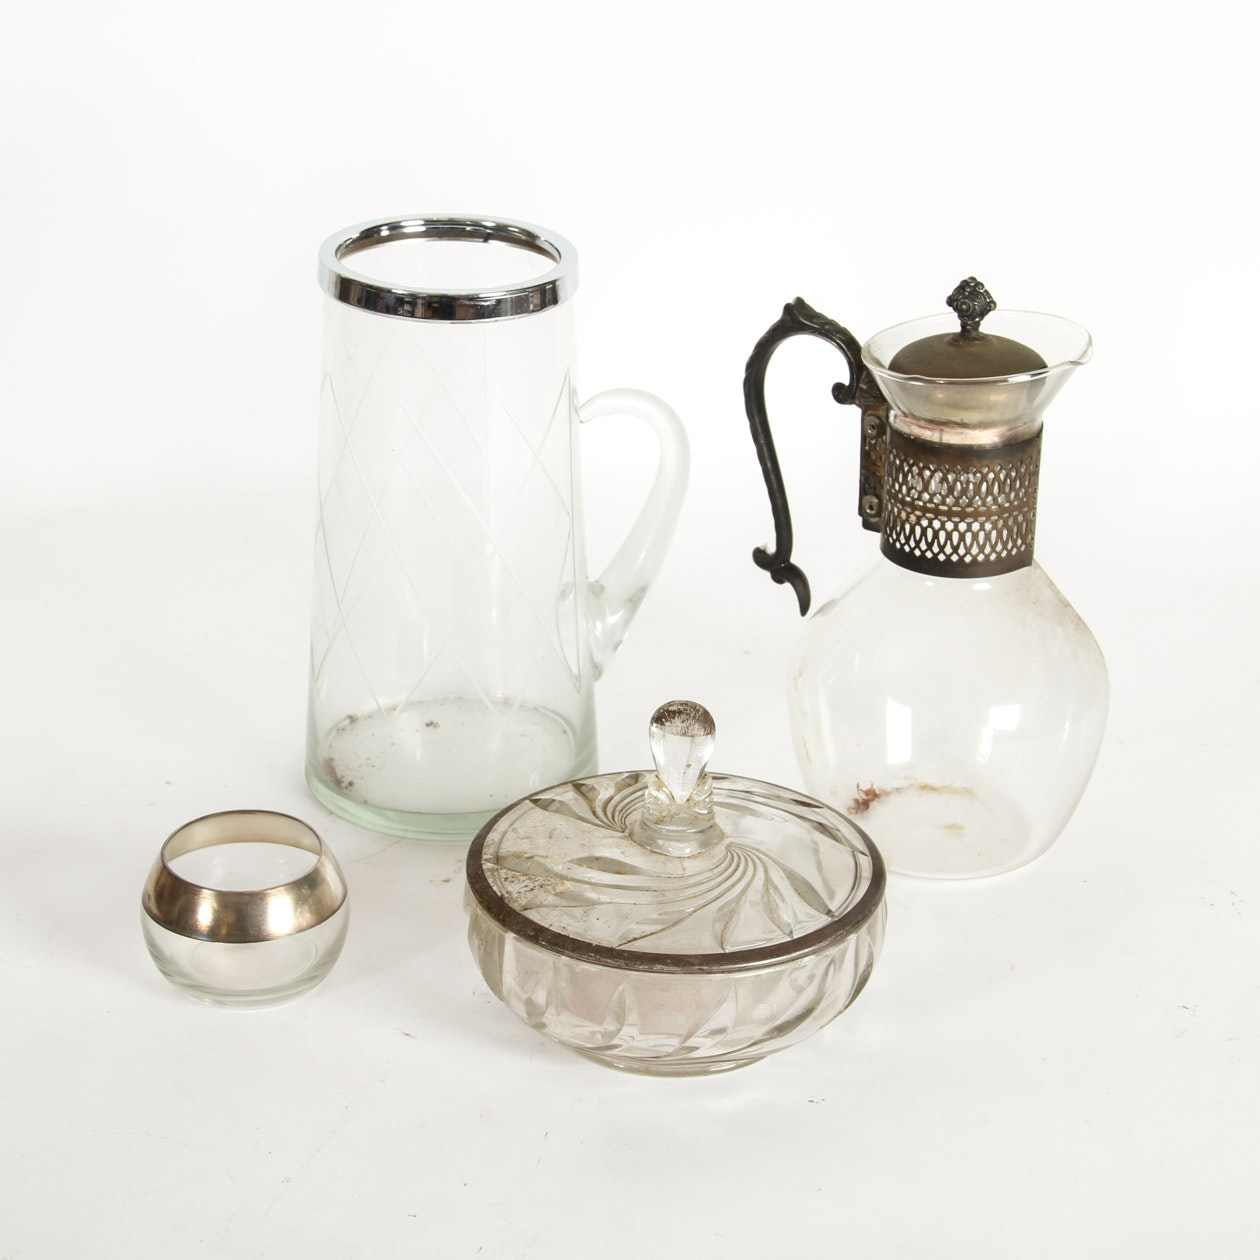 Collection of Vintage Glassware with Silver Plate Rims